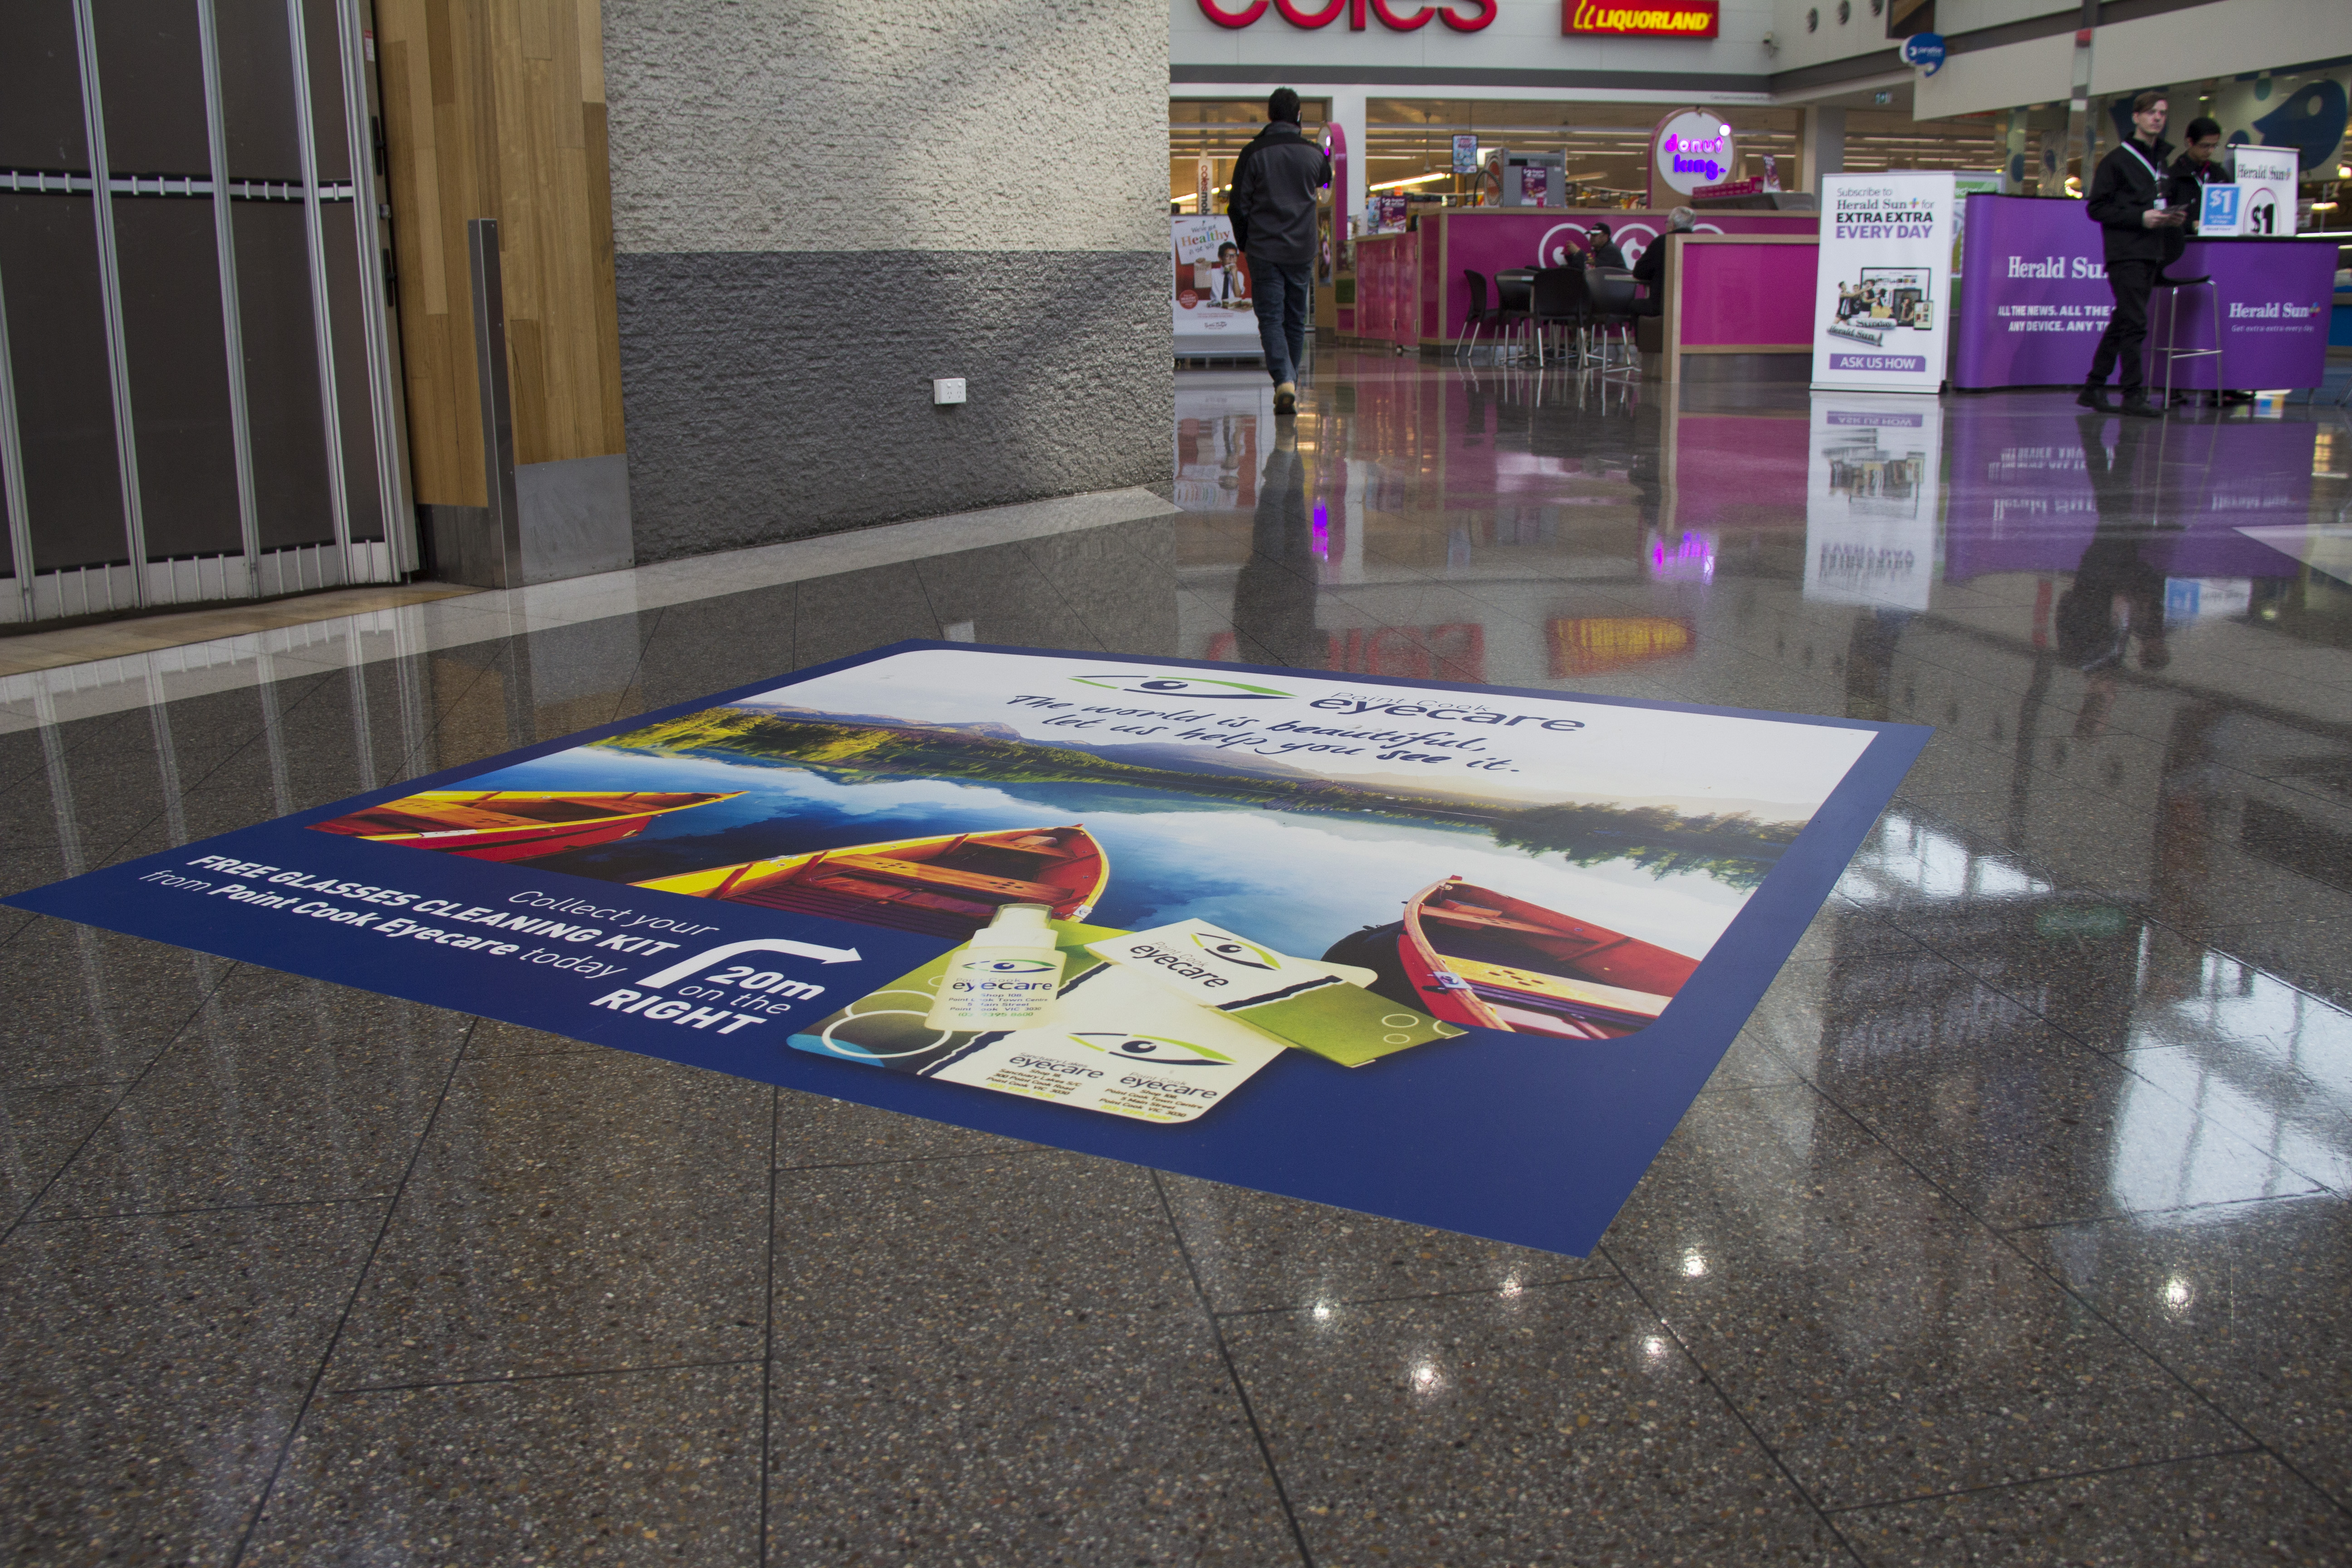 Floor advertising with custom printed floor graphics or floor decals